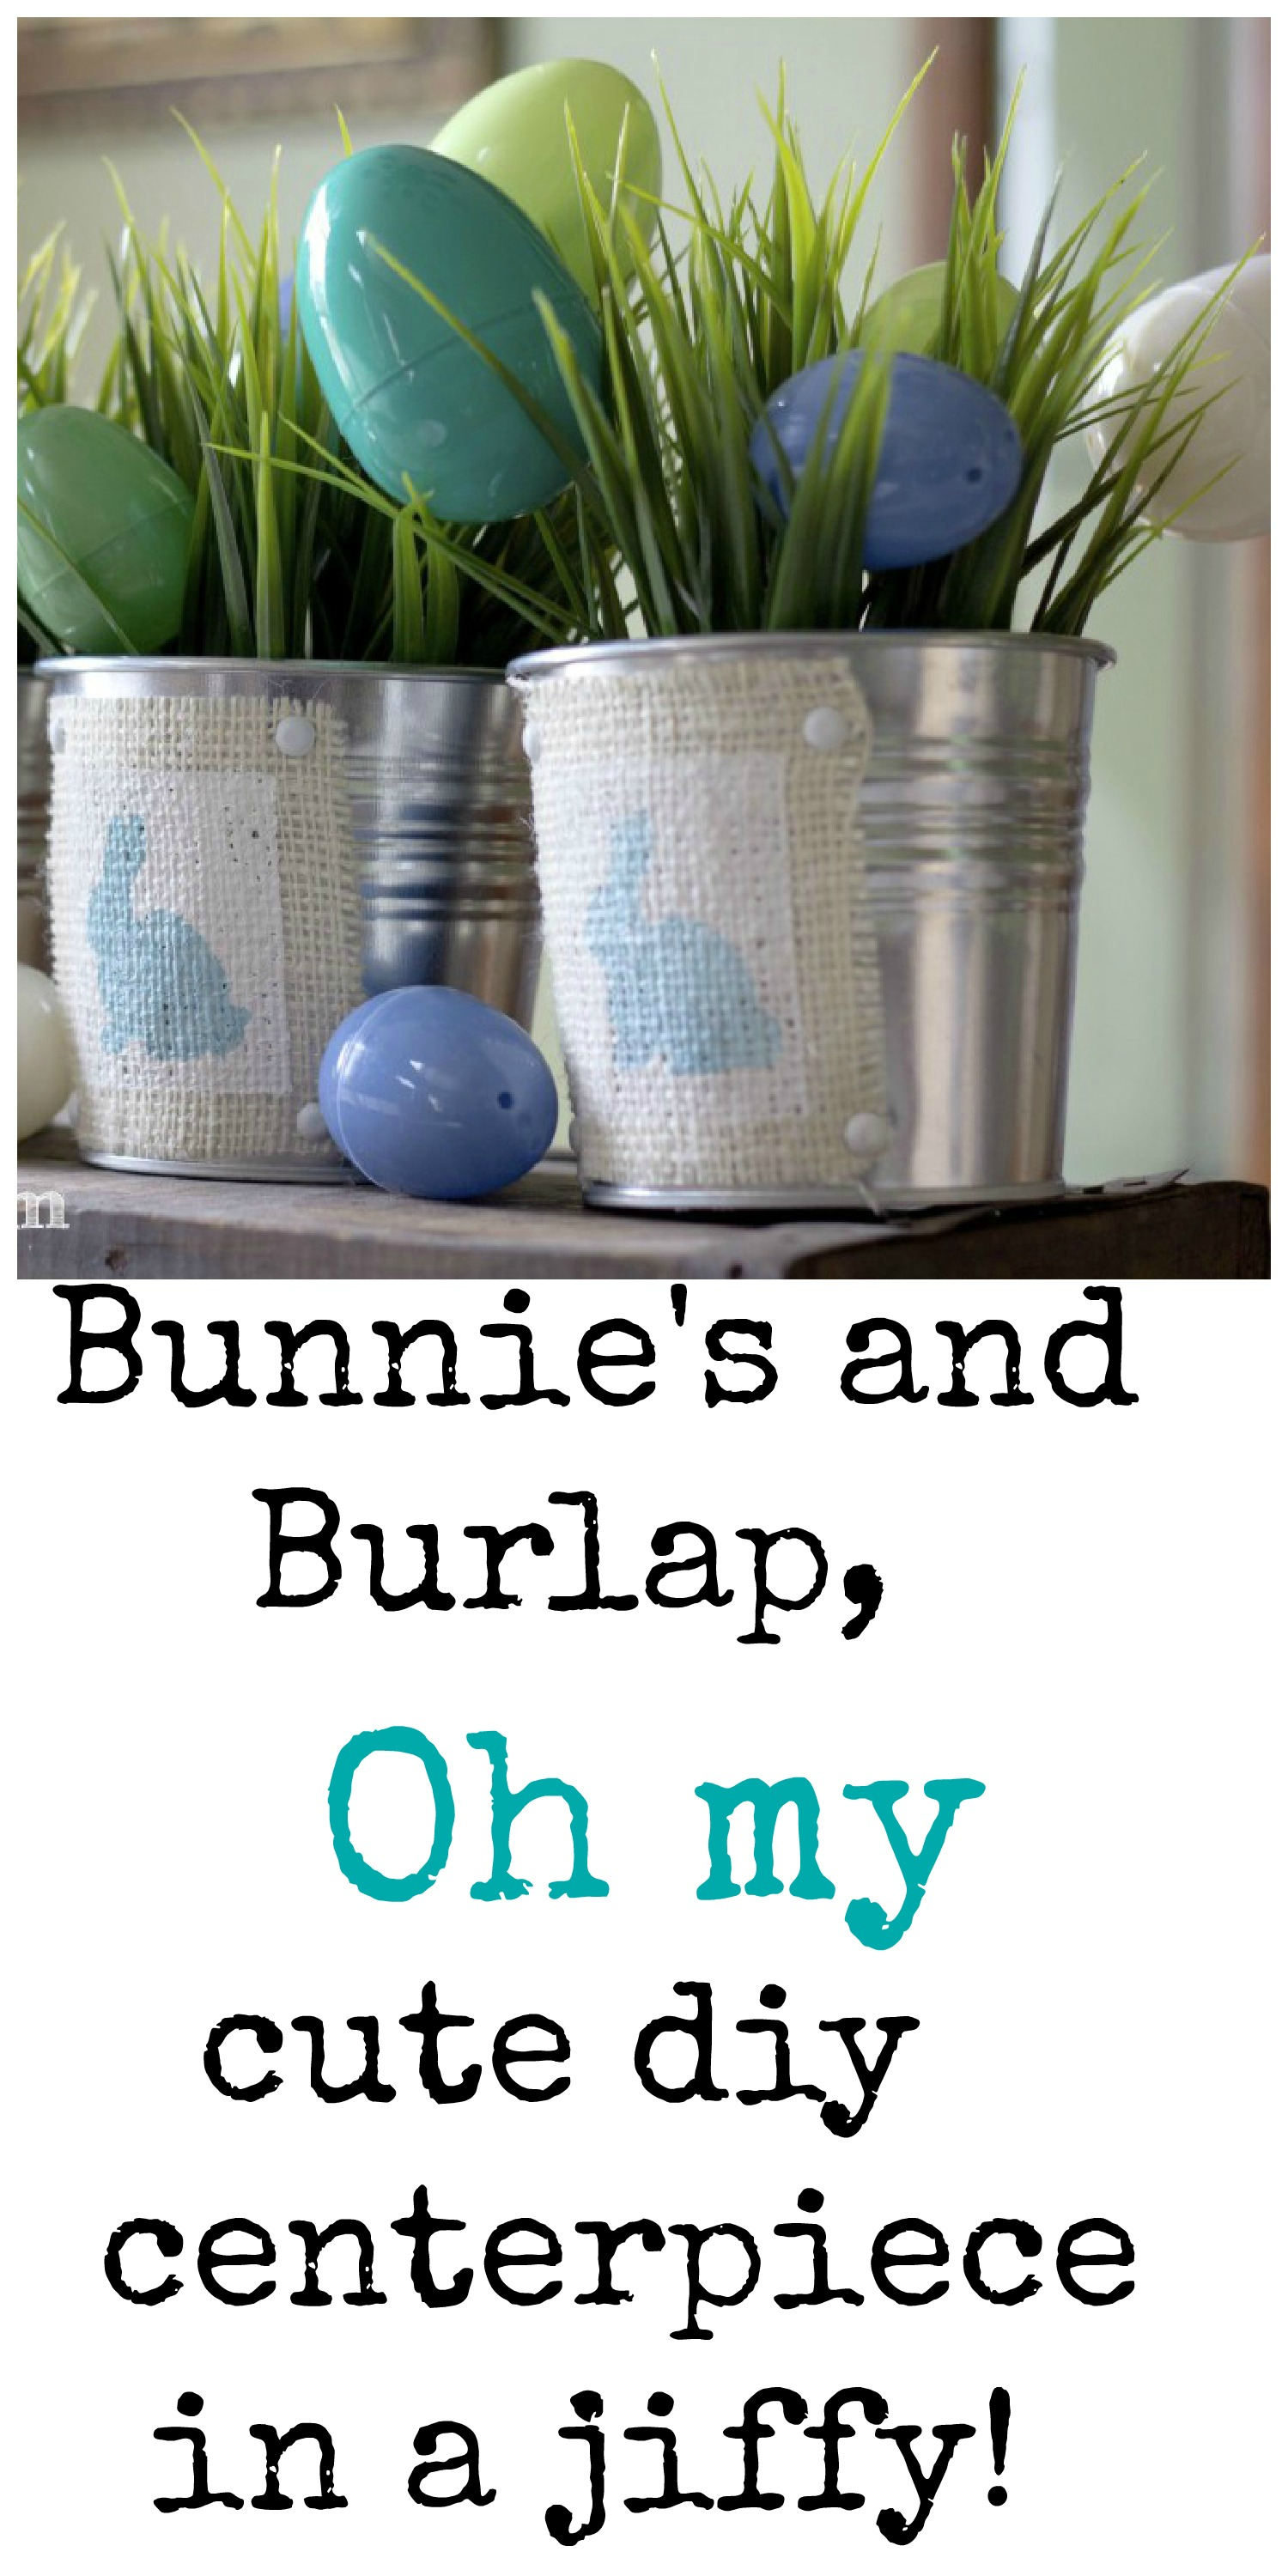 bunnies and burlap